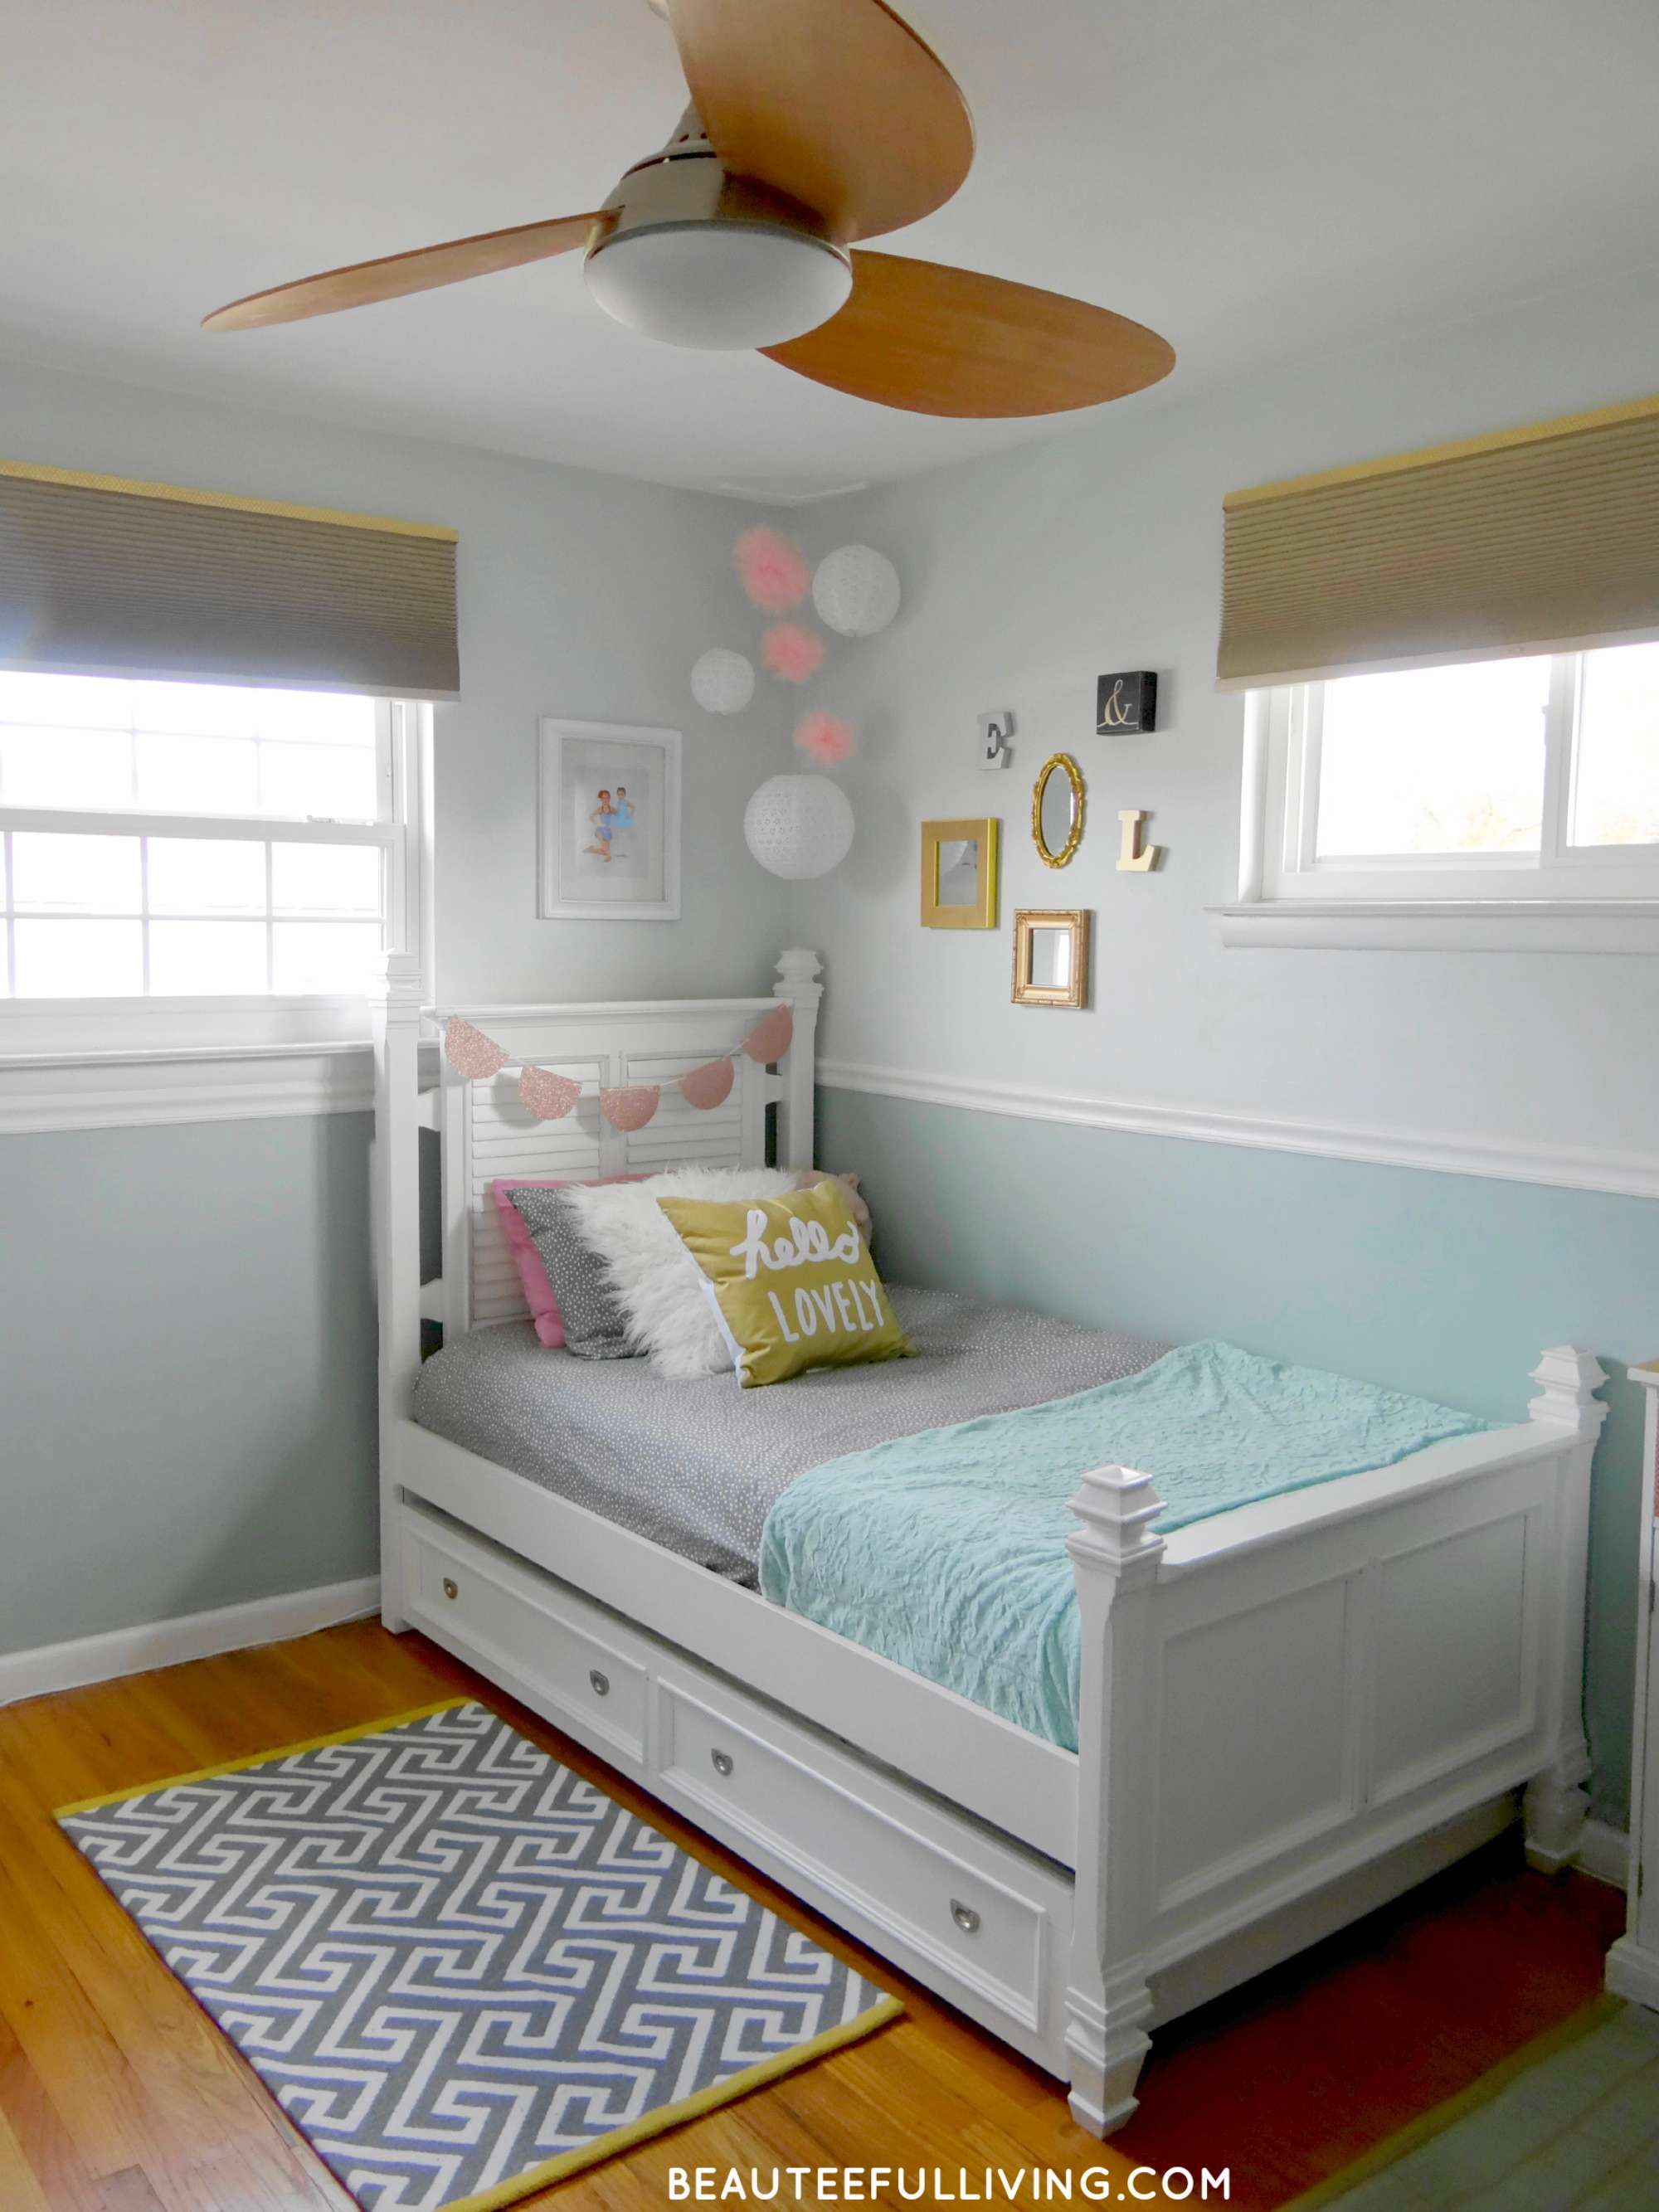 Ceiling Fan Girls Room Girls Room Makeover Ceiling Fan Beauteeful Living Beauteeful